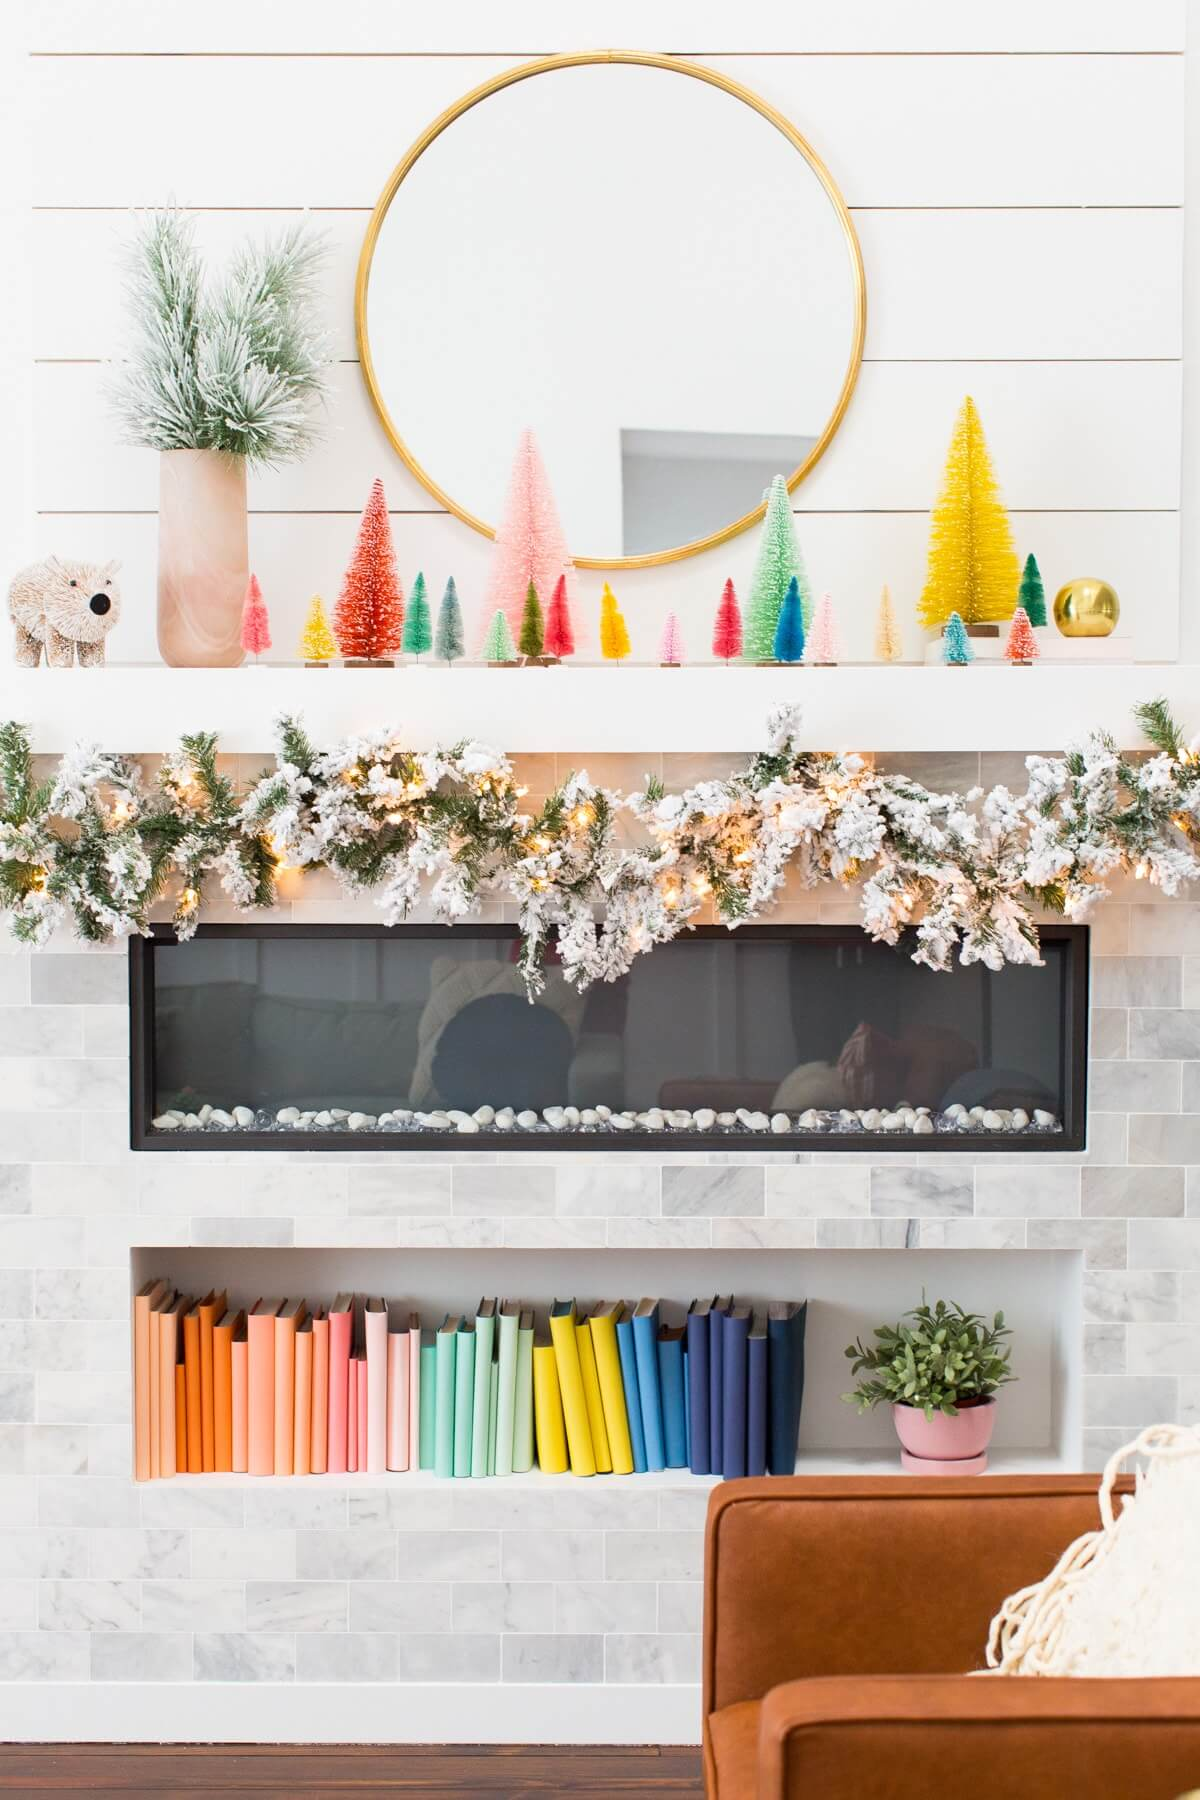 snowy garland and bottle brush mantel